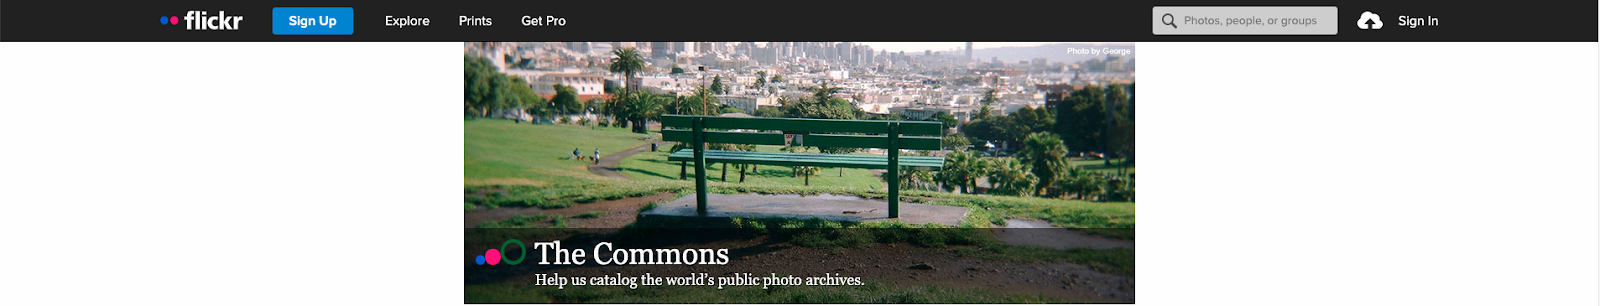 Flickr Commons page screengrab